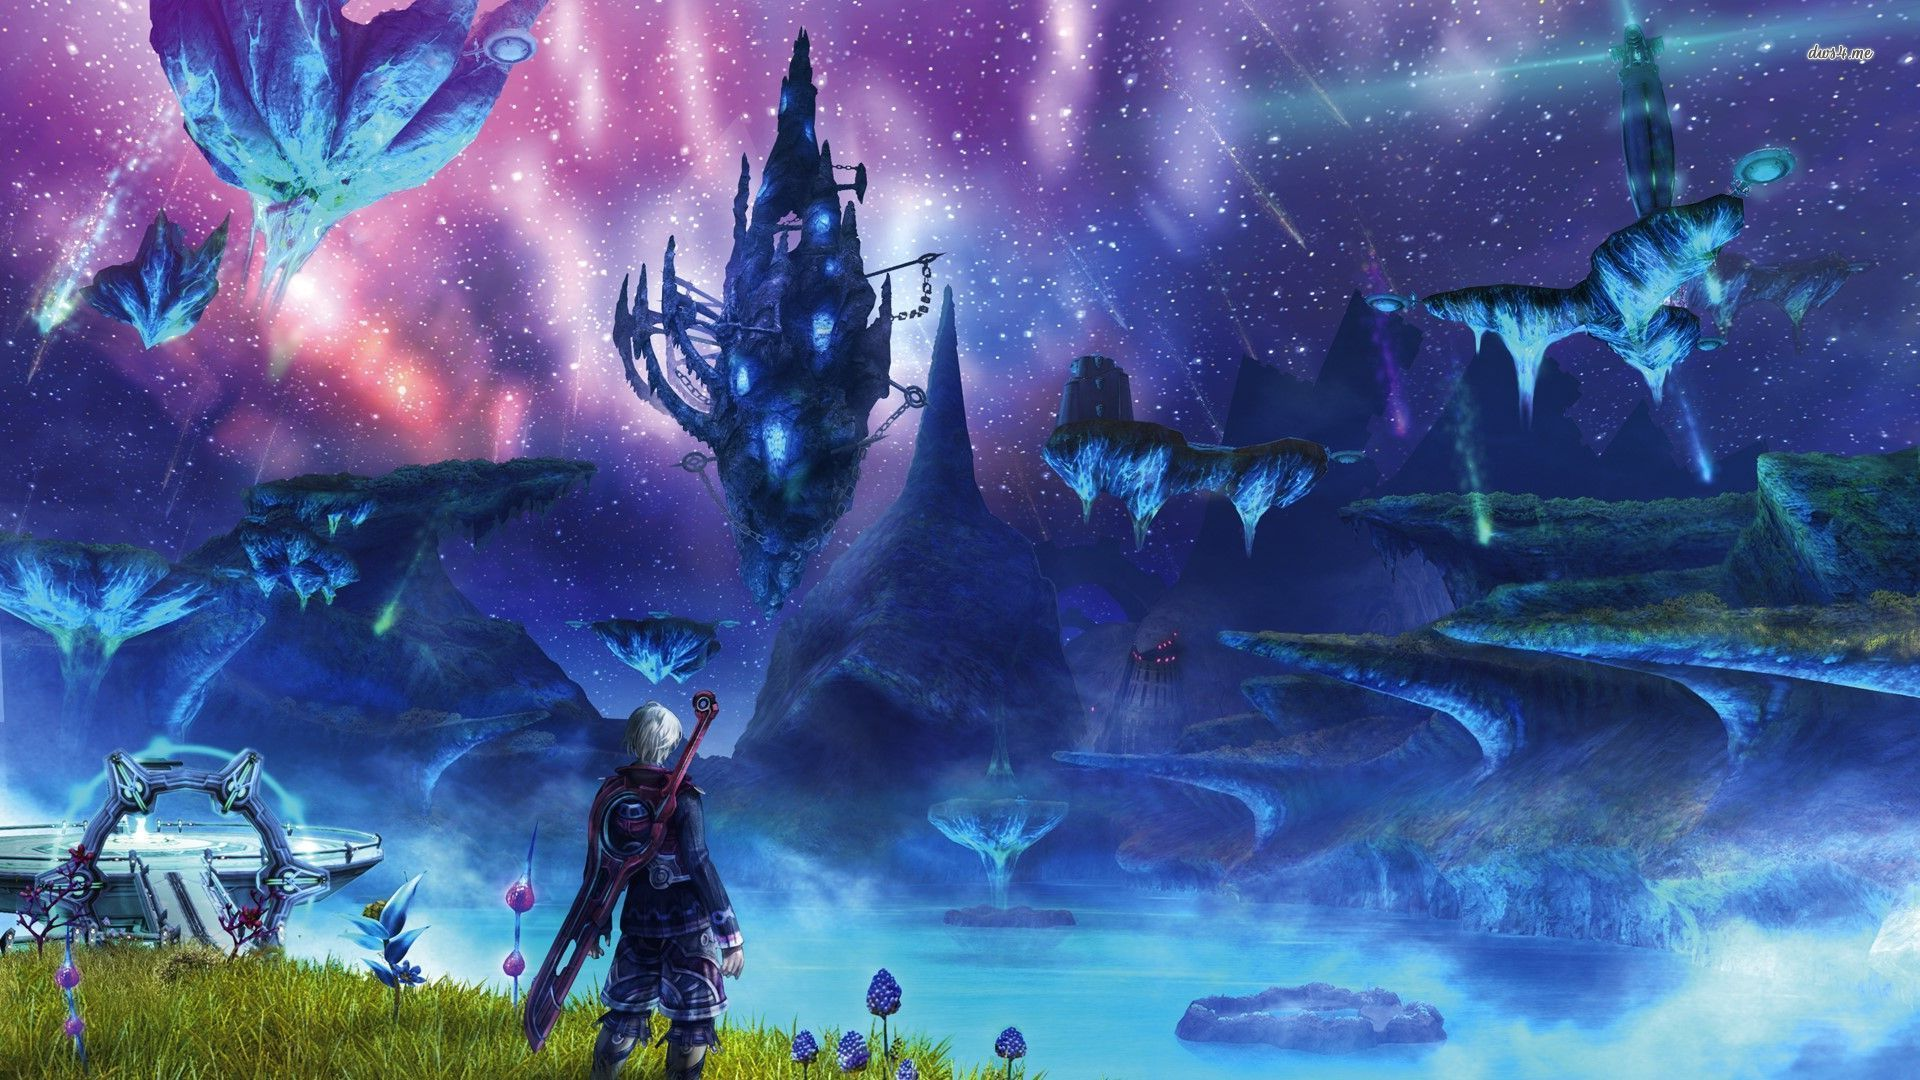 Cool Xenoblade Chronicles Hd Wallpaper Id 7118 Download Page Selama